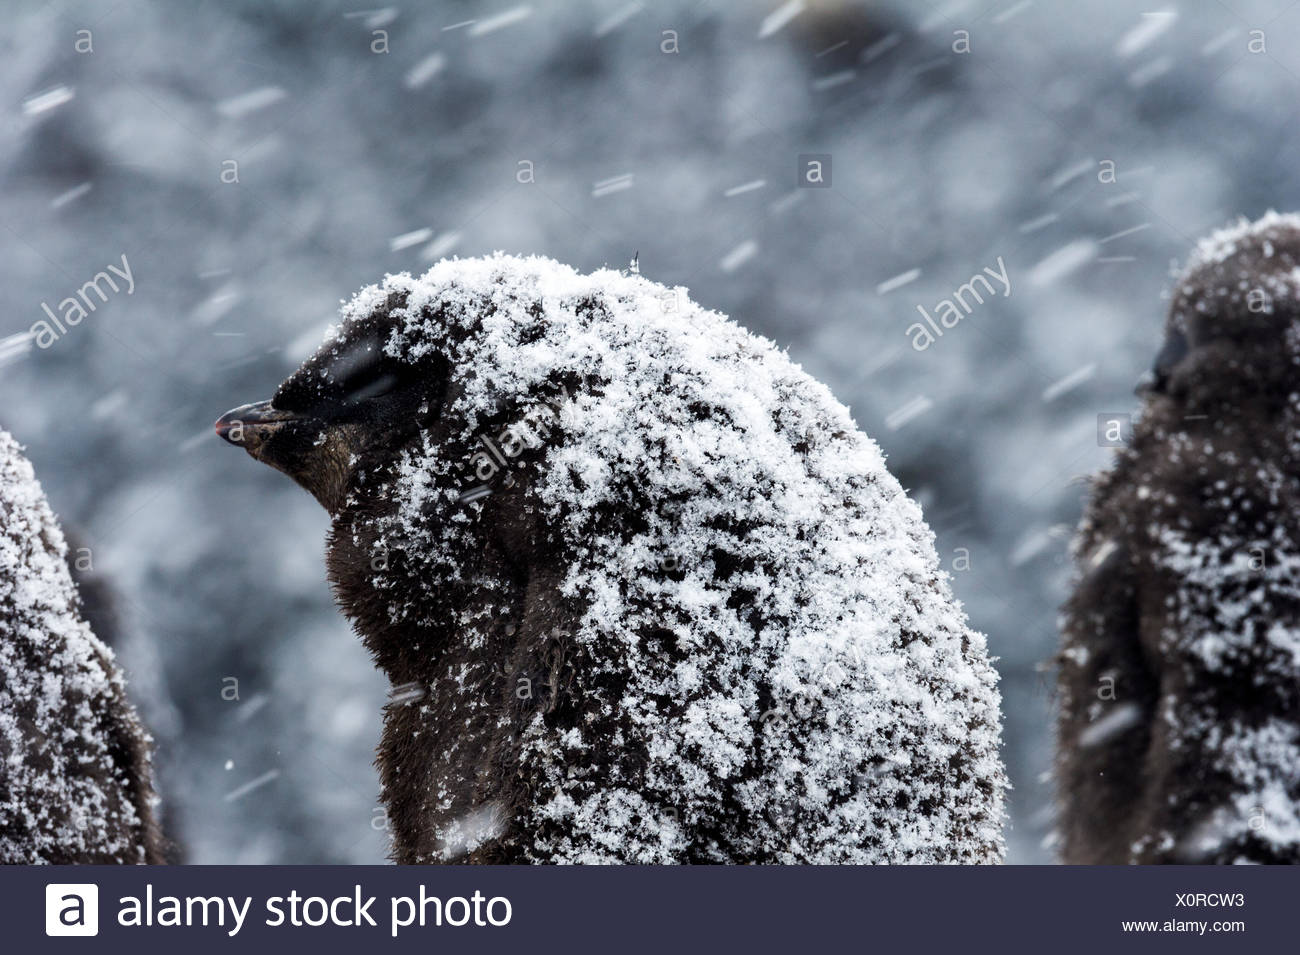 A fluffy Adelie Penguin chick covered in snow during a snow storm in Antarctica. Stock Photo